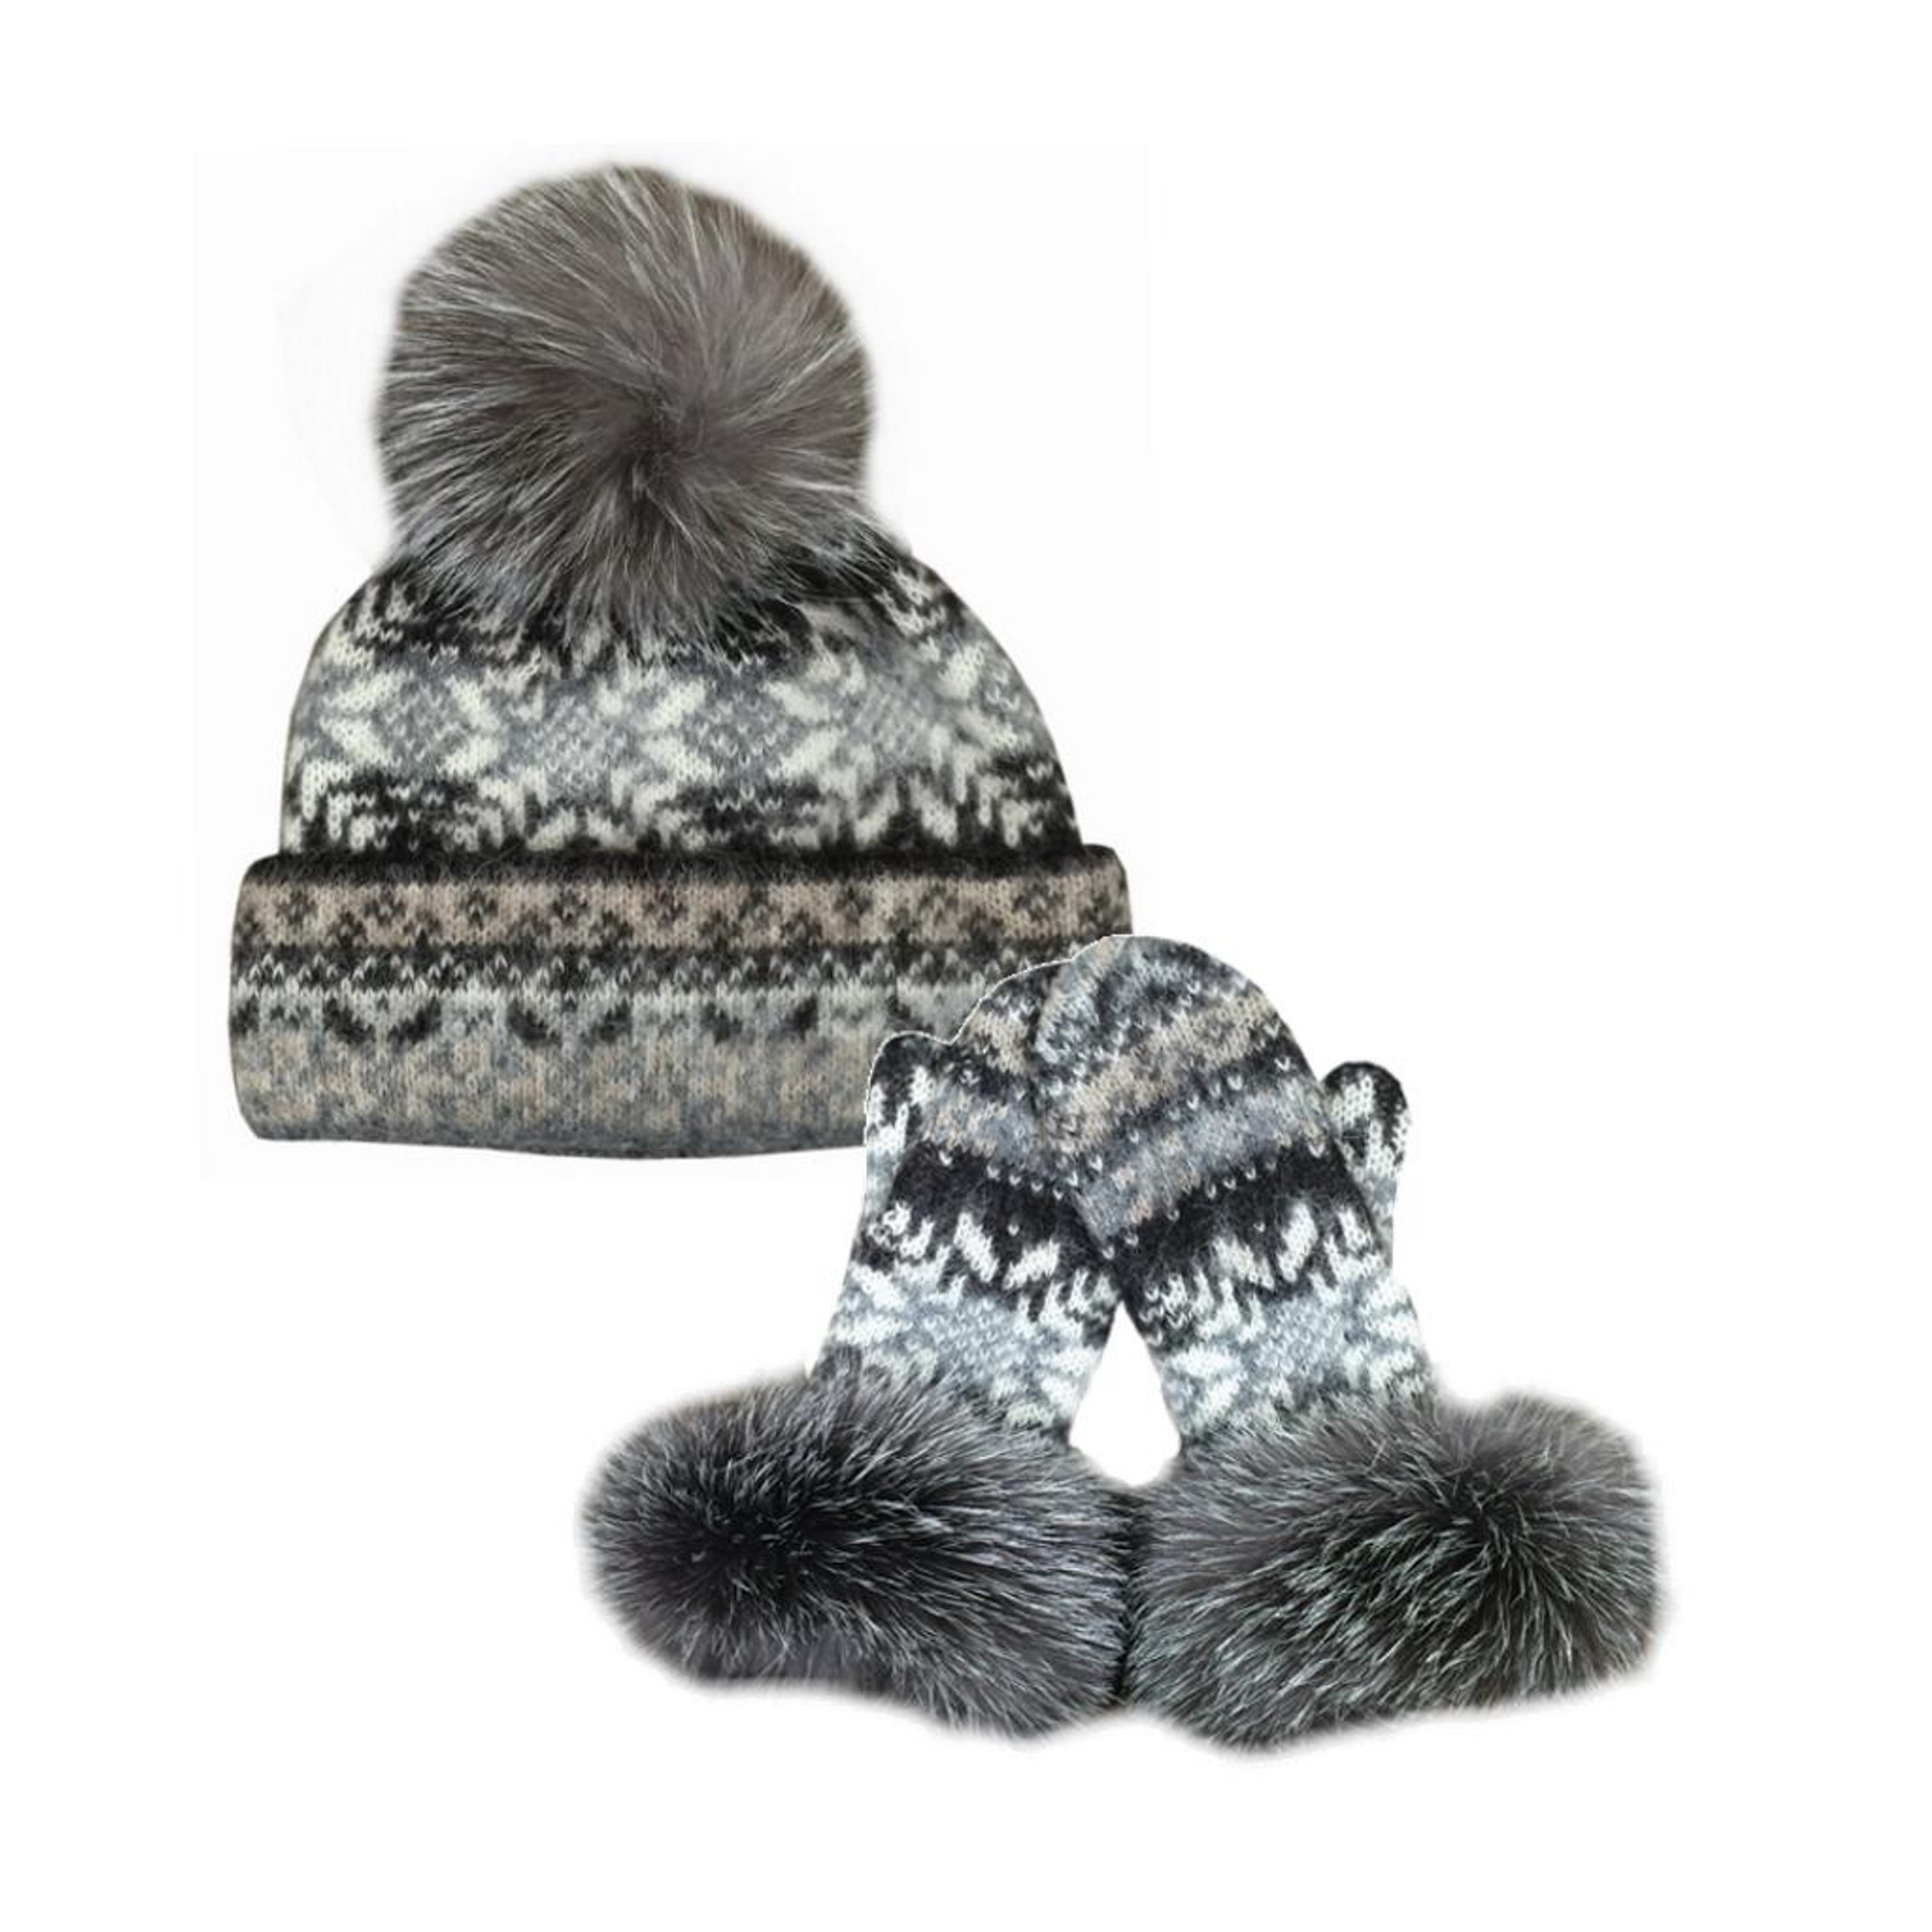 006e8989 Icelandic Wool Ladies PomPom Toque / Mitten Set (Oatmeal / Chocolate) by  Freyja